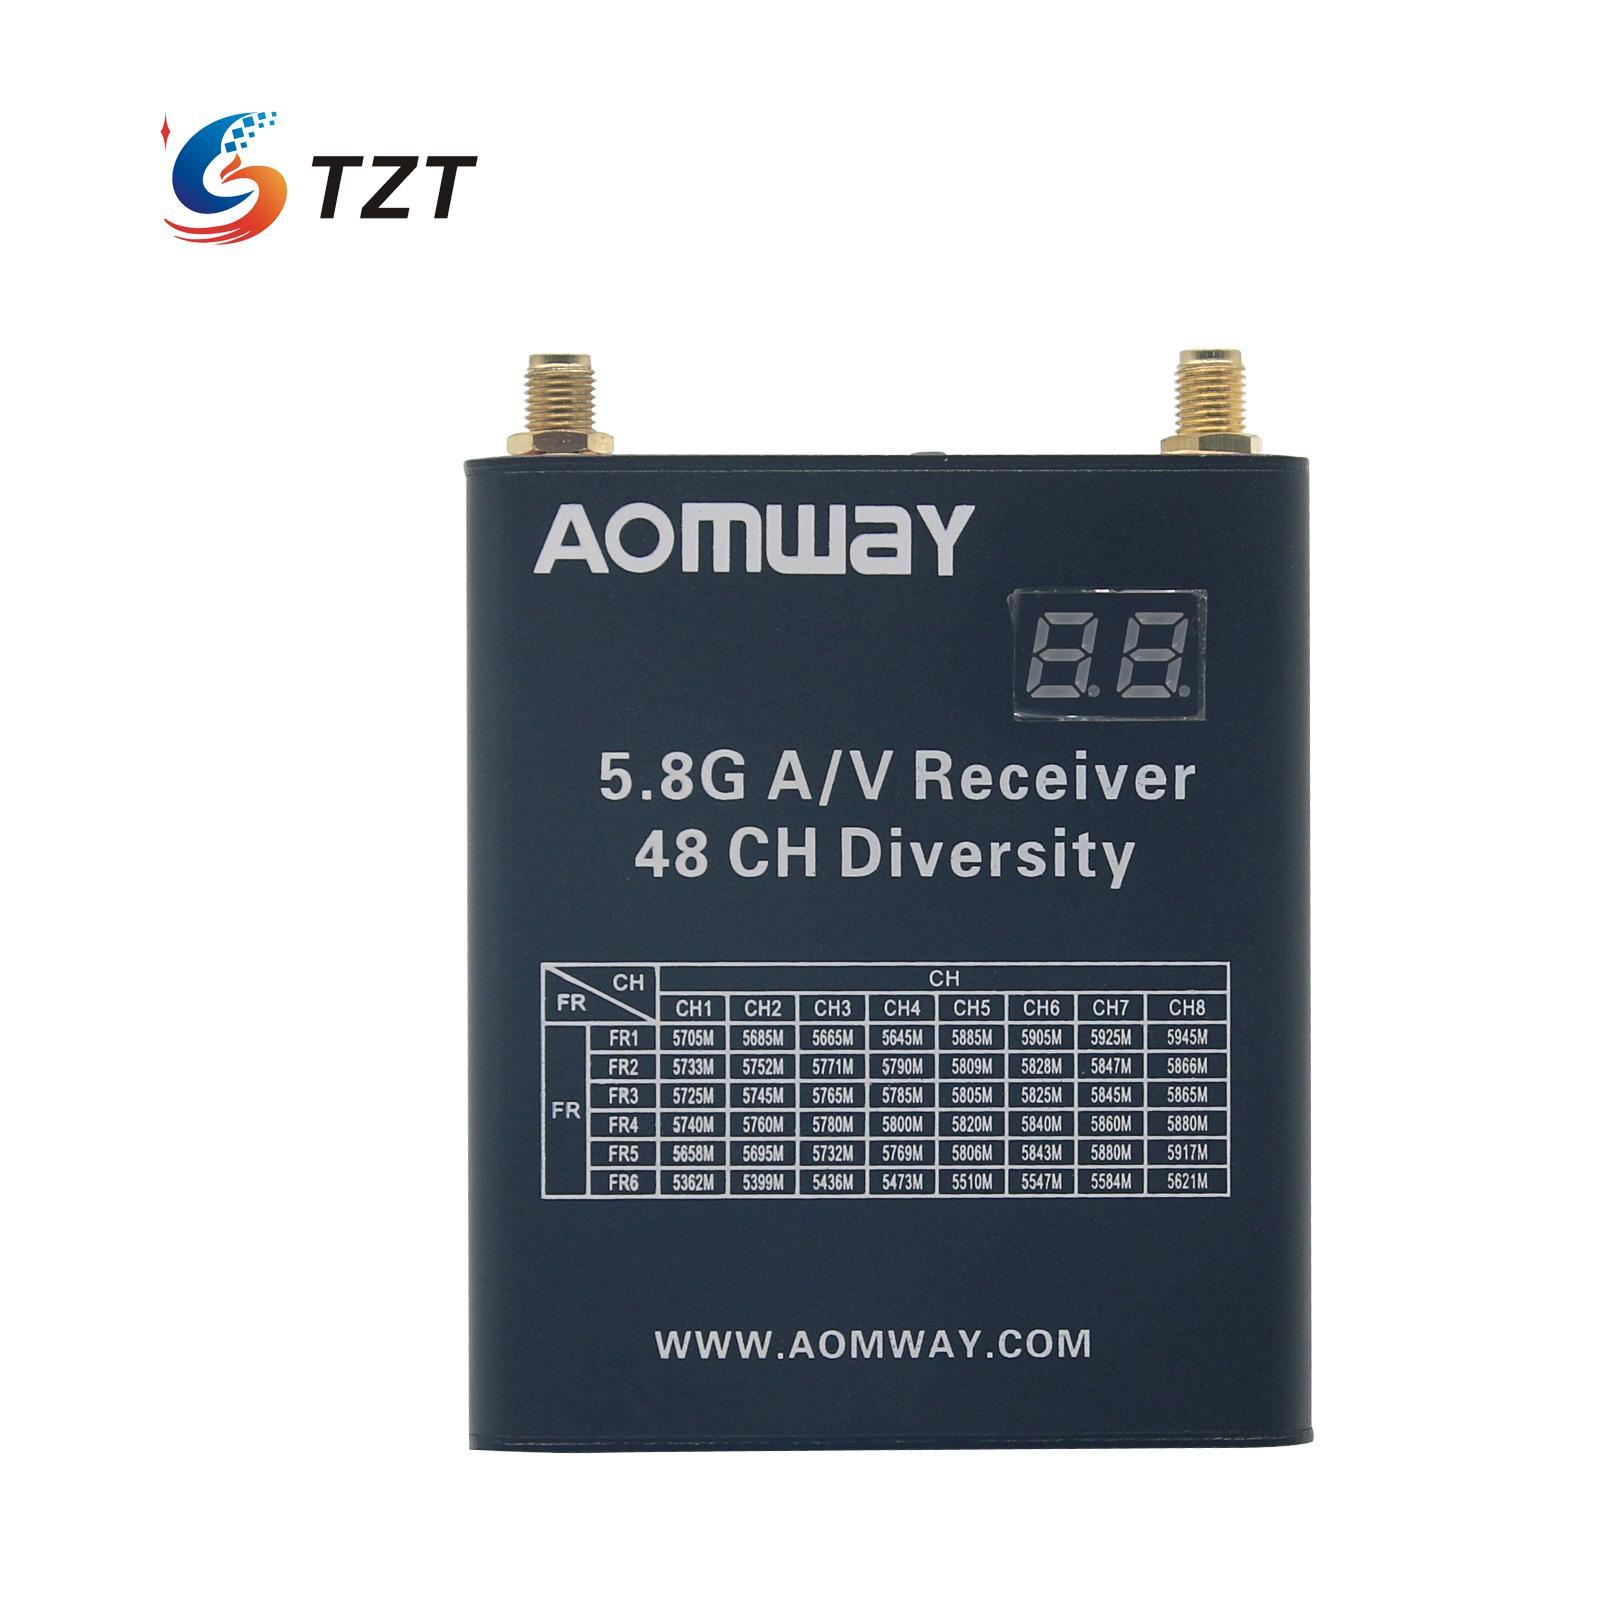 Aomway 5.8G A/V Receiver 48 CH FPV Telemetry Diversity DVR Image for RC Aircraft Multicopter